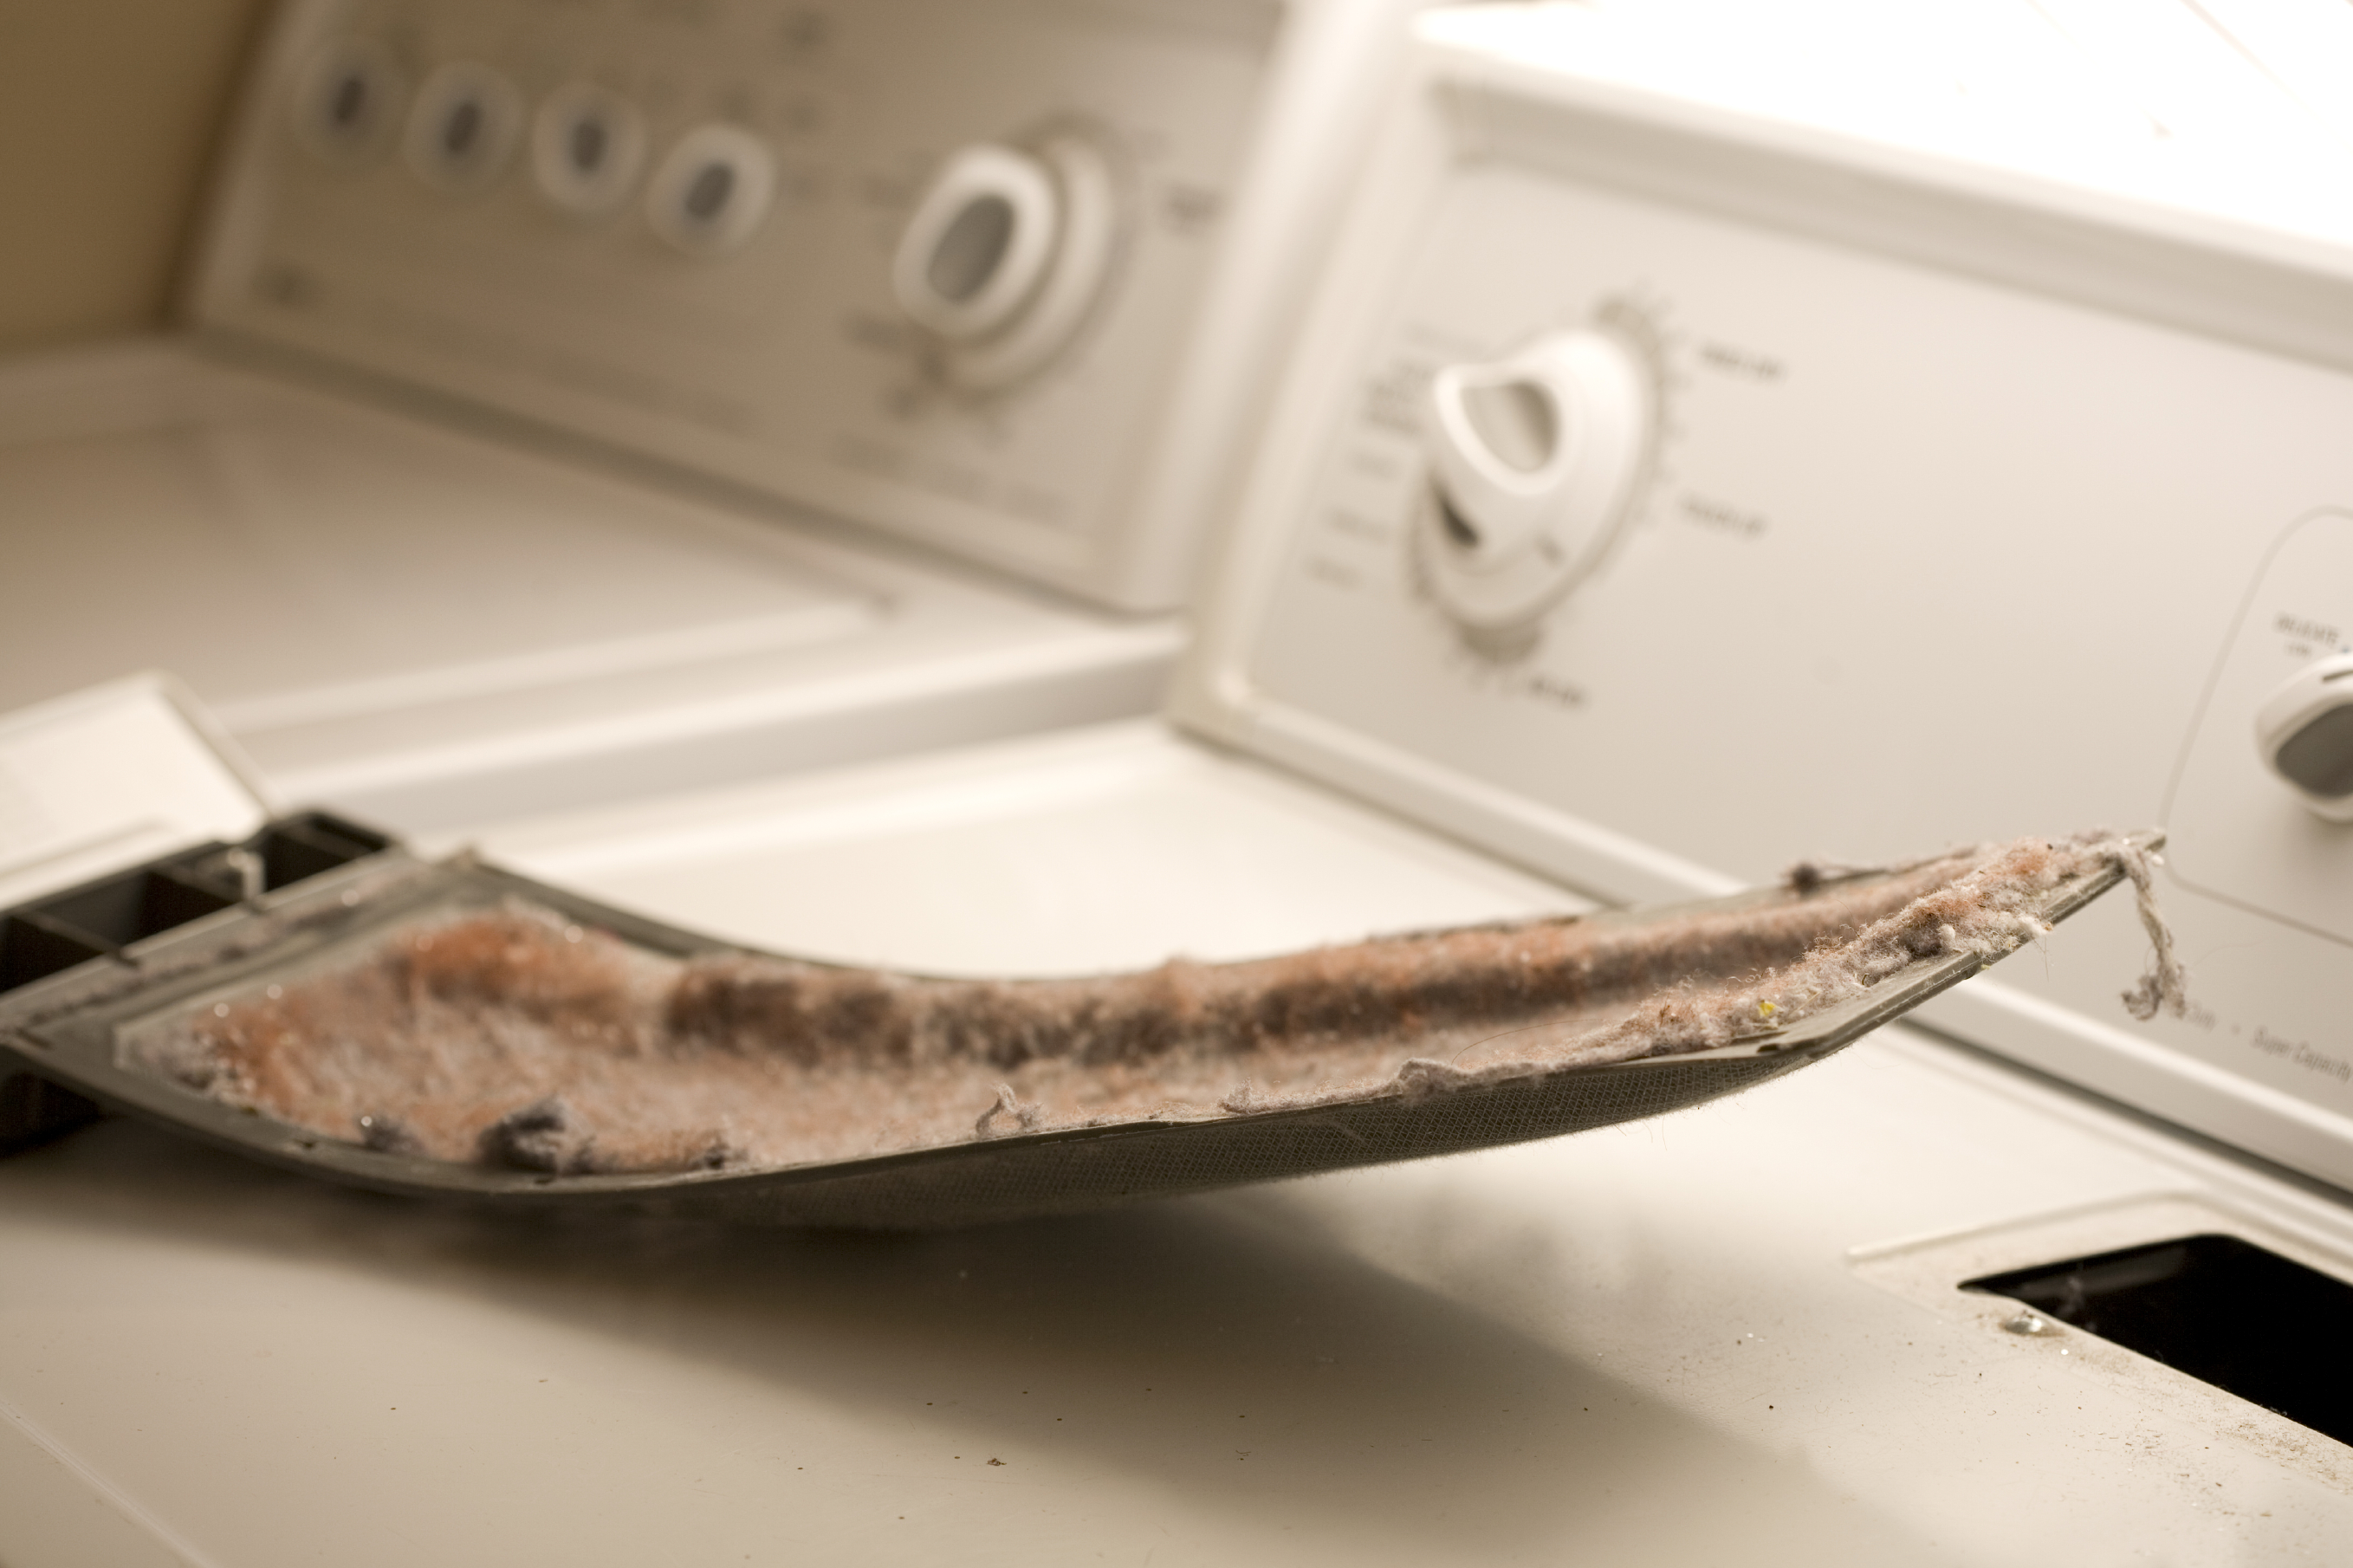 clean dryer vents help prevent fire and boost dryer performance fire